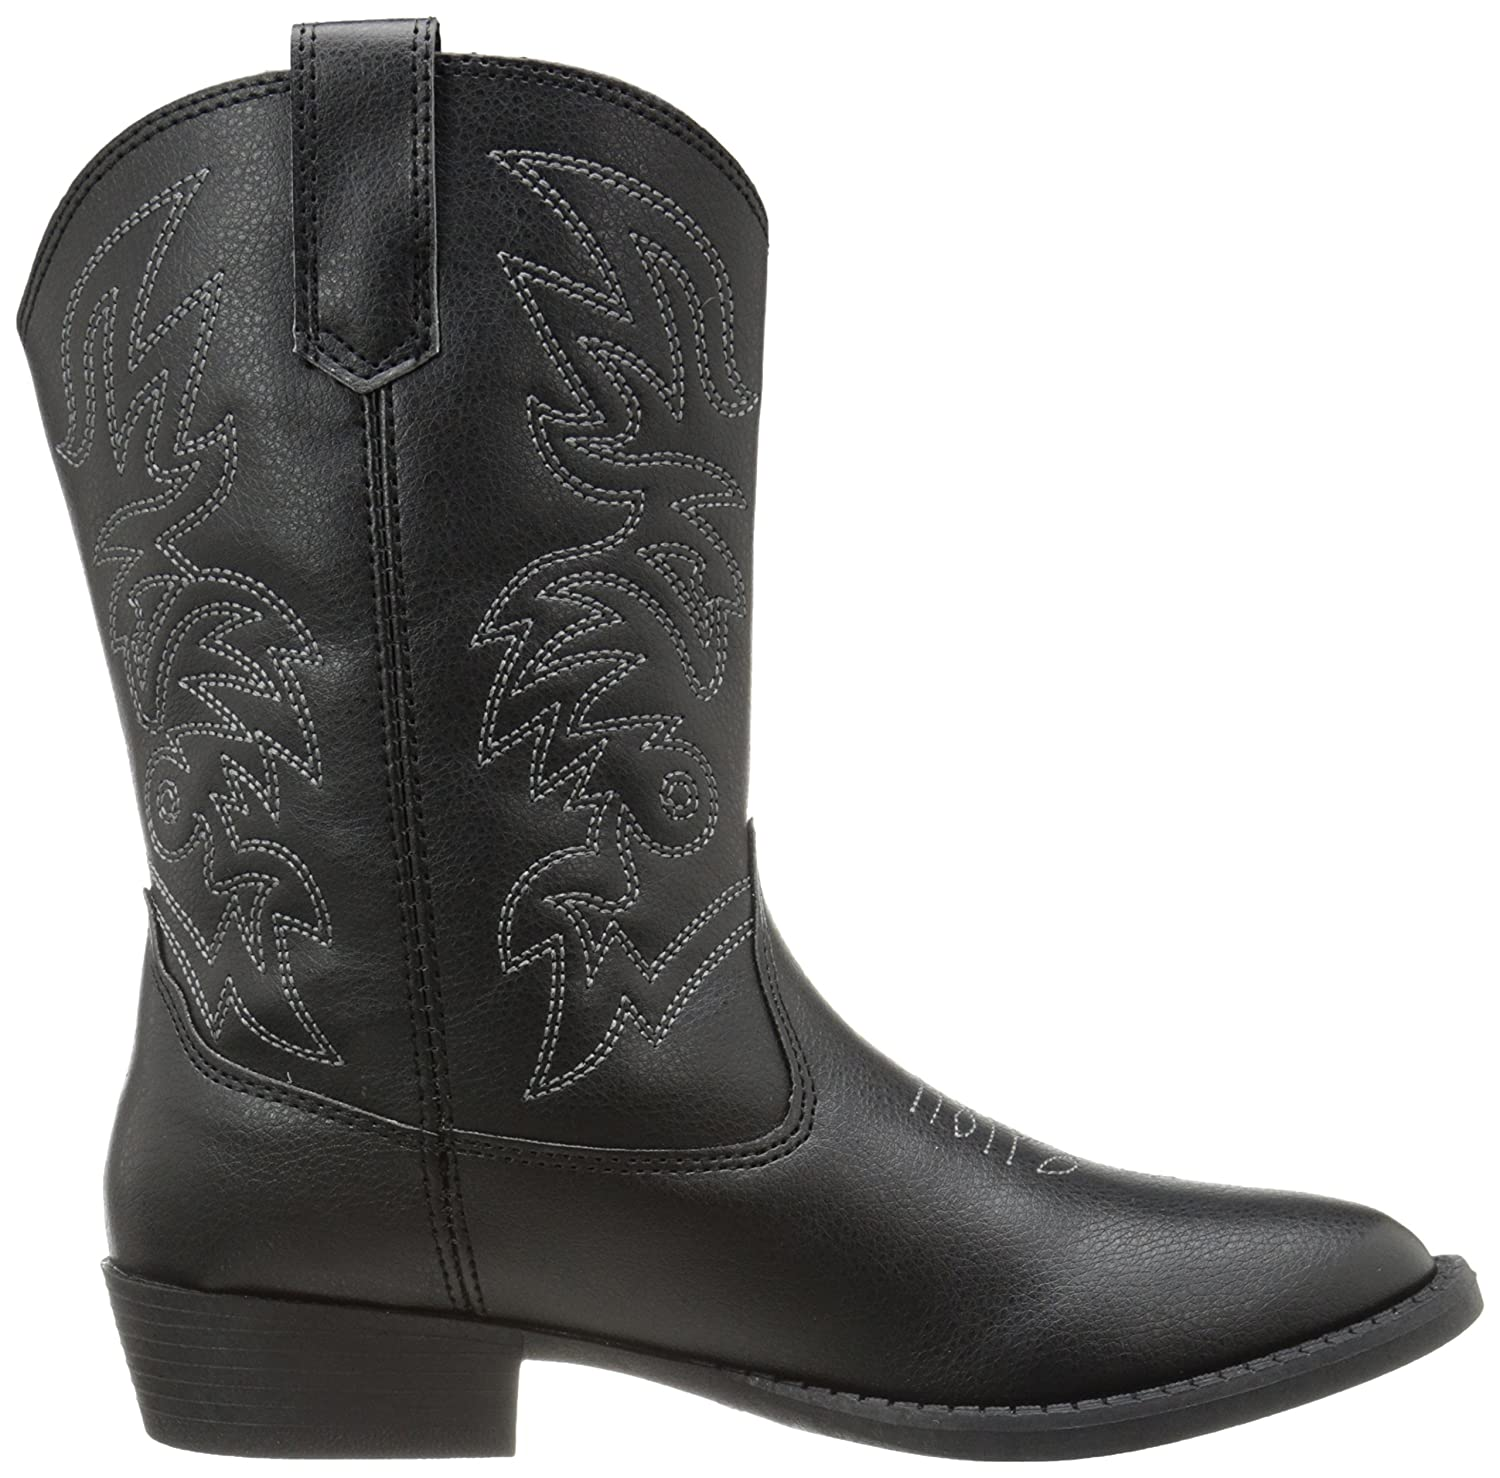 16742fa0d4ce0 Amazon.com | Deer Stags Ranch Unisex Pull On Western Cowboy Fashion Comfort  Boot (Little Kid/Big Kid) | Boots